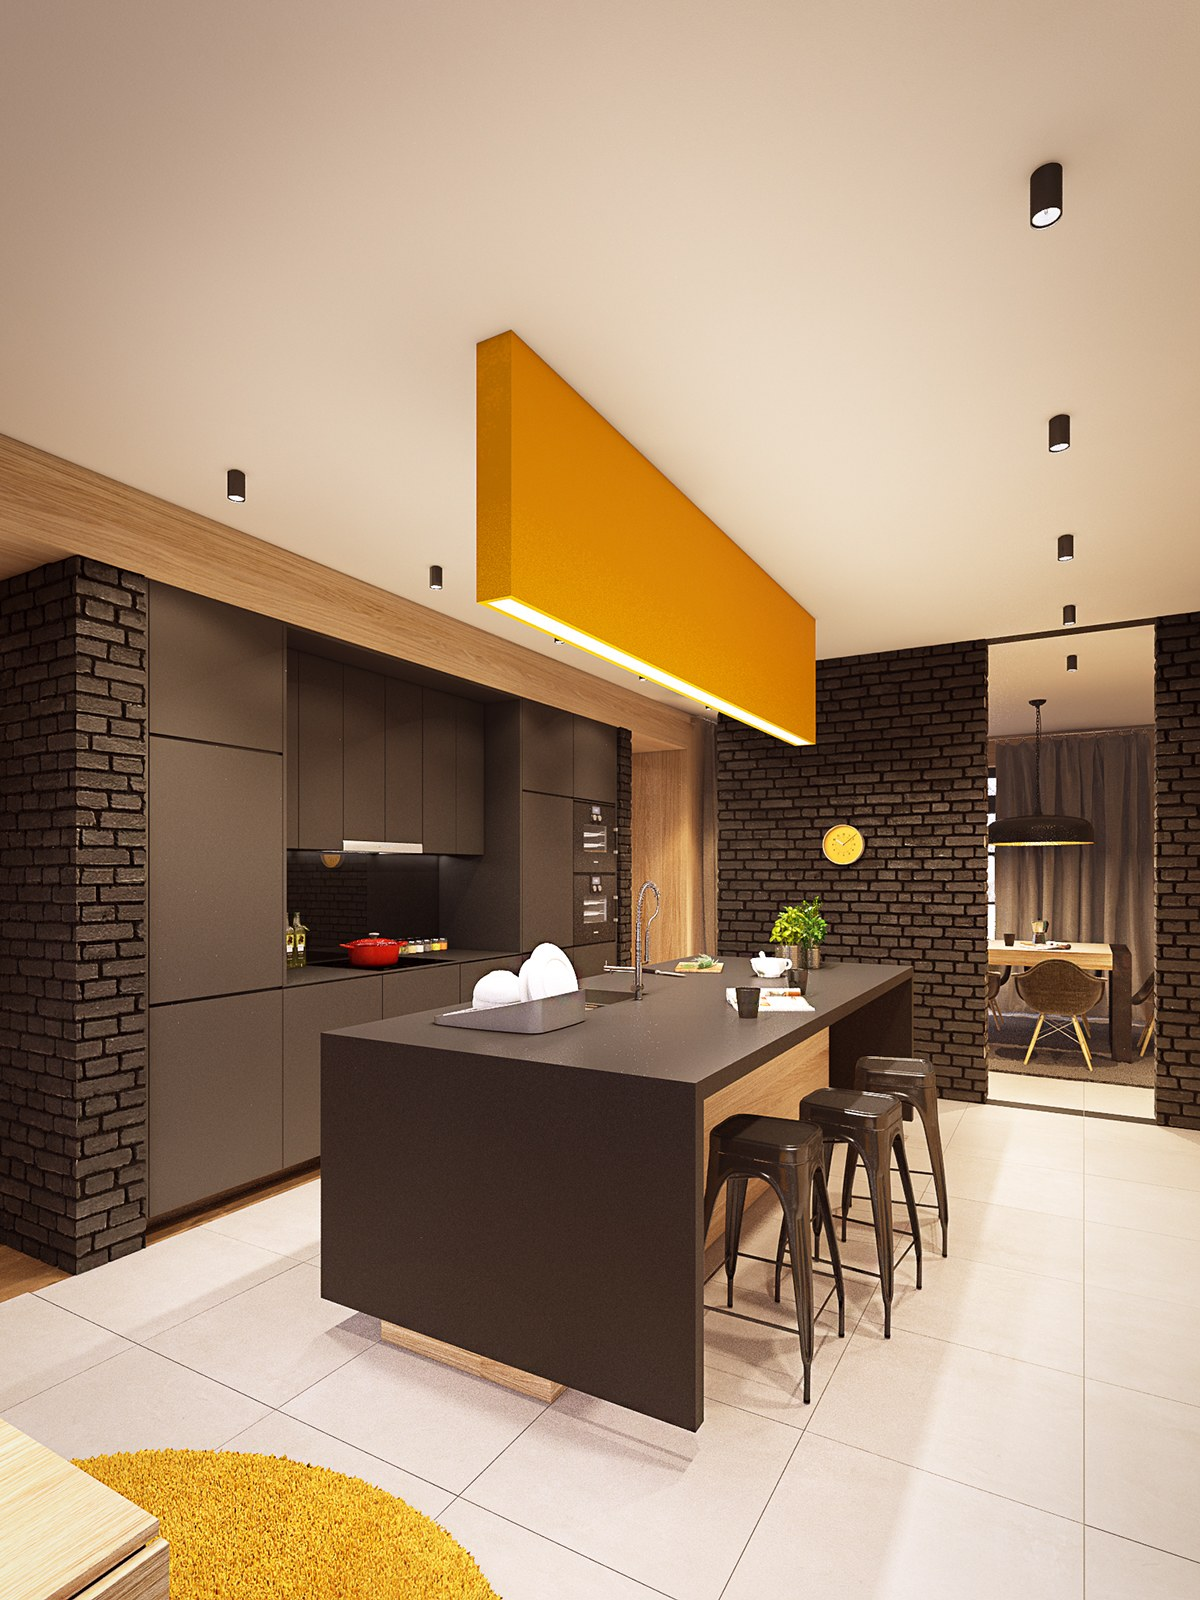 Slick Kitchen - A seductive home with lush colors and double baths